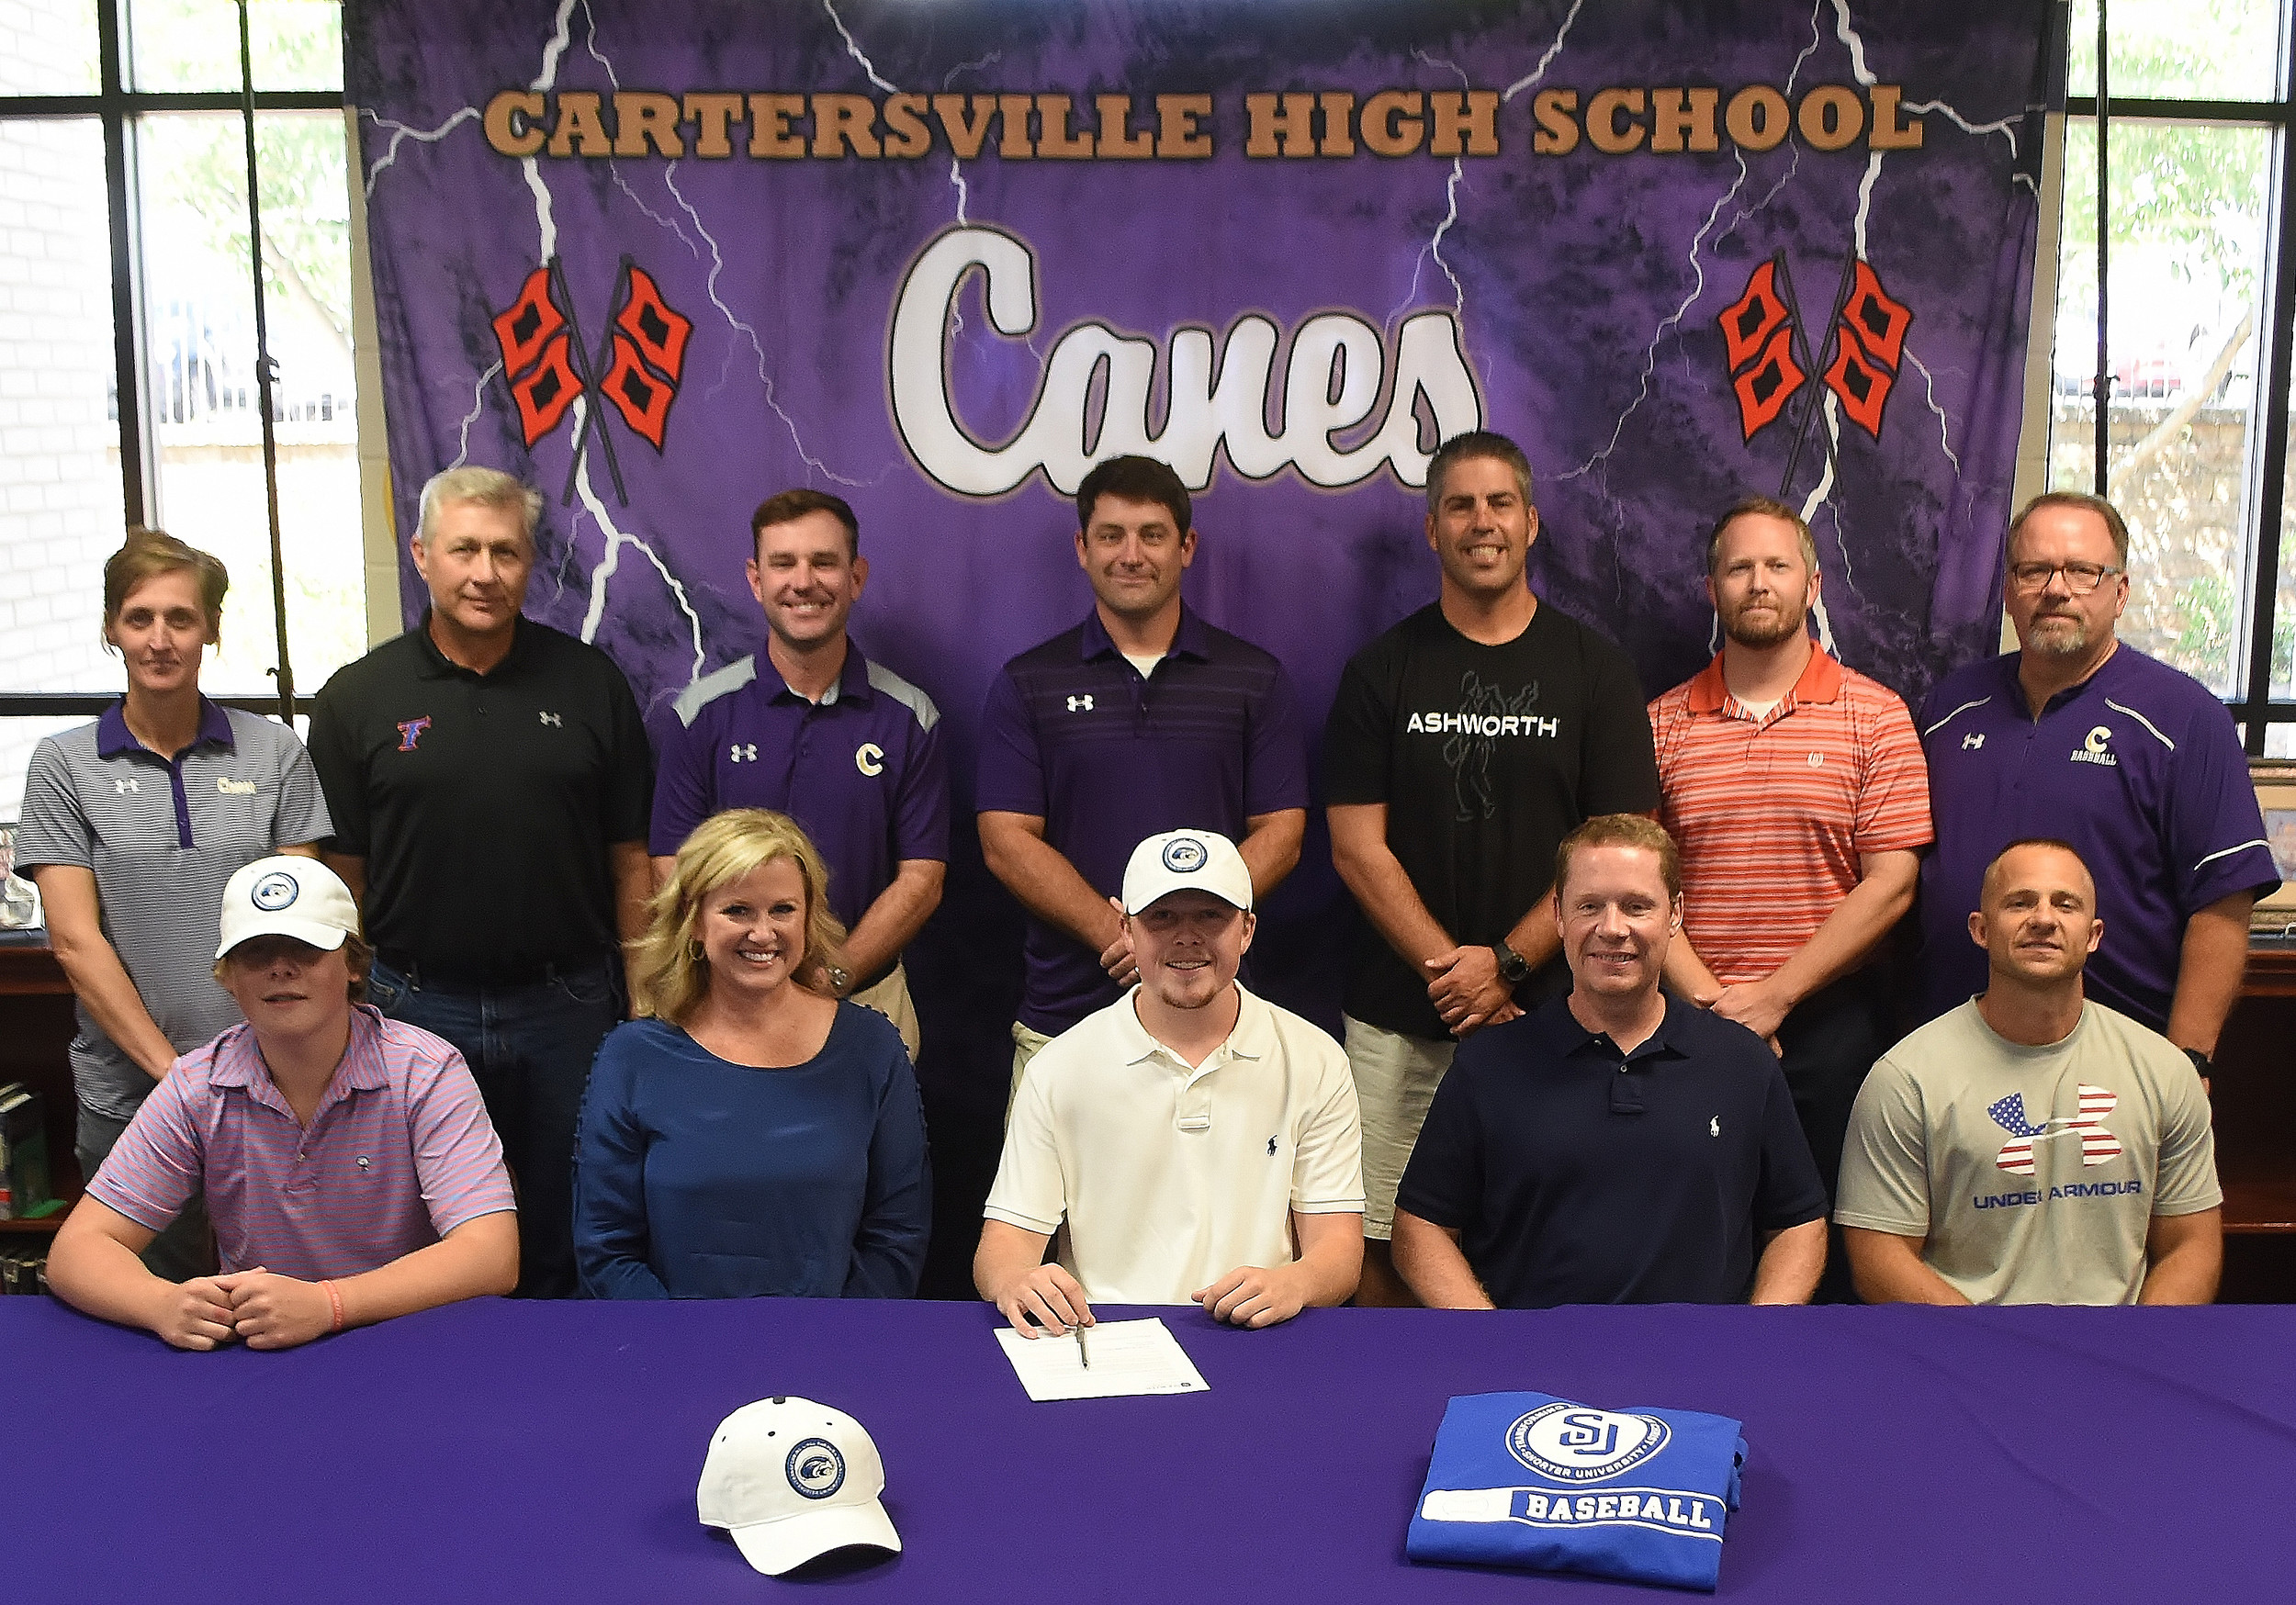 Cartersville High School 2018 graduate John Reed Evans, front row, center, signed on Tuesday to play baseball at Shorter University in Rome. On hand for the signing were, front row, from left, Brady Evans, brother; Dede Evans, mother; Tony Evans, father; and Corey Gochee, CHS assistant baseball coach; back row, from left, Shelley Tierce, CHS principal; Byron Kizer, Evans' summer ball coach; Kyle Tucker, CHS head baseball coach; Brandon Patch, CHS assistant baseball coach; David Cagle, CHS assistant baseball coach; Drew Startup, Evans' youth pastor; and Darrell Demastus, CHS athletic director.